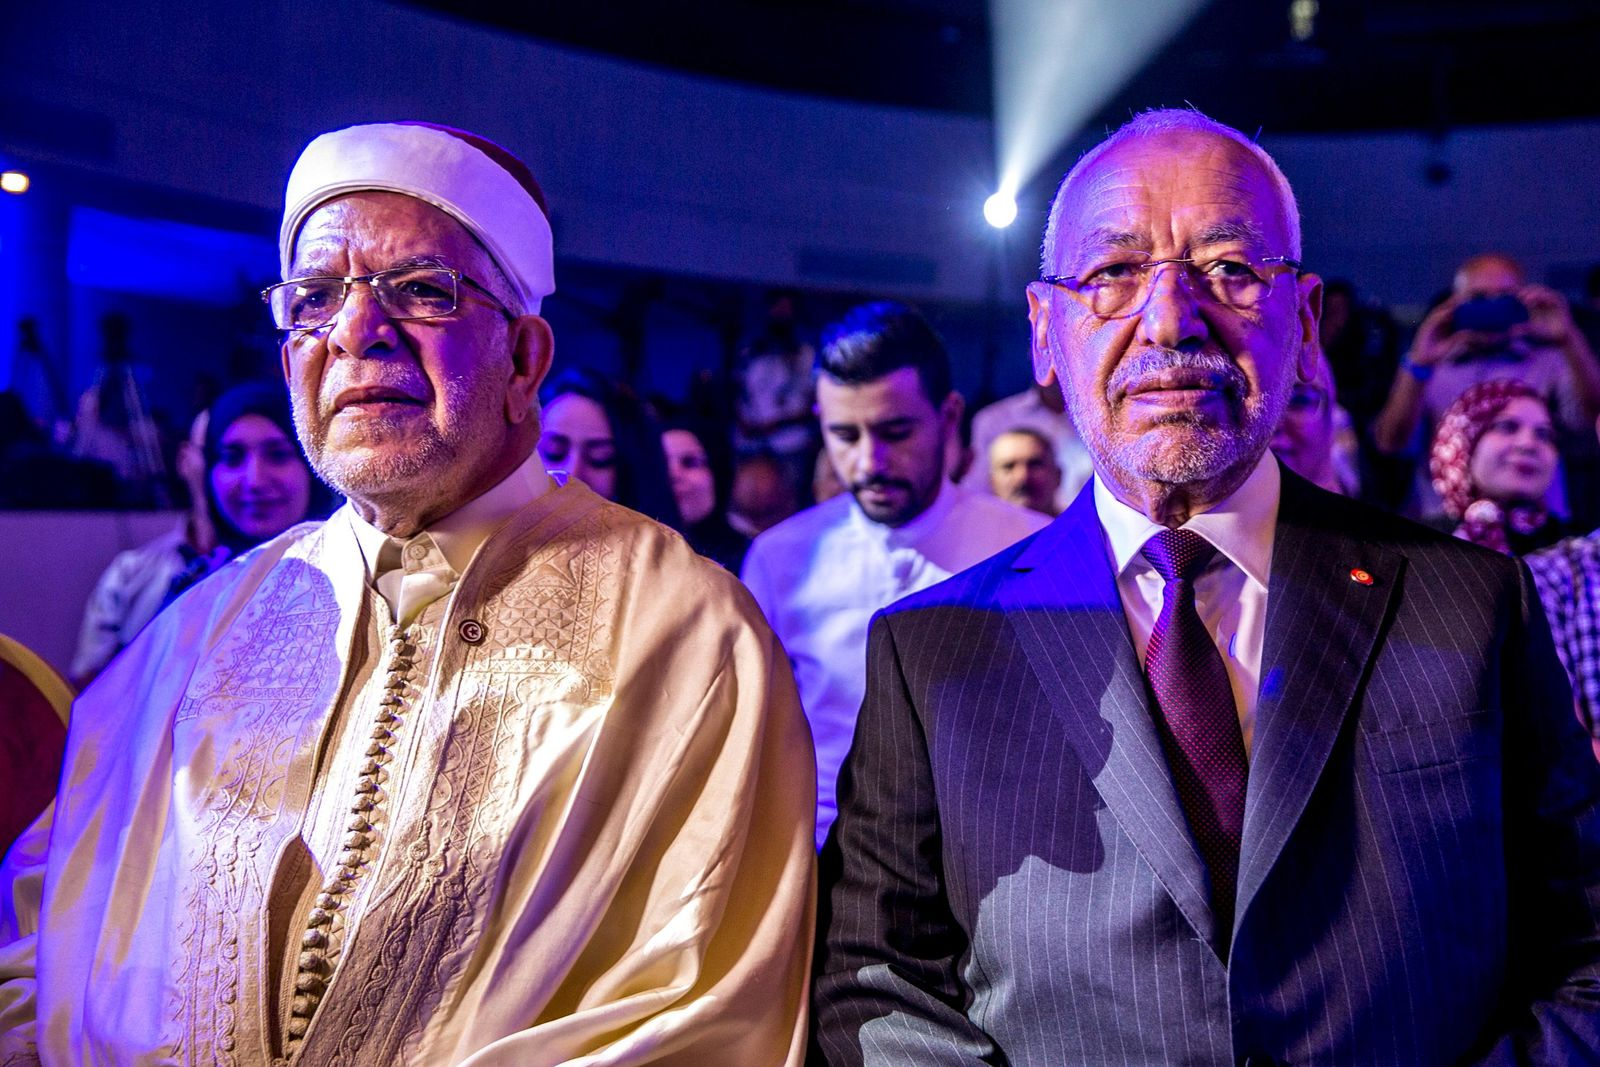 Vice President of the Islamist party Ennahda and candidate for the upcoming presidential elections Abdelfattah Mourou, left, and Tunisian Leader of the Islamist Ennahda party, Rachid Ghannouchi during a meeting with the members of the party in Tunis, Tunisia, Friday, Aug. 30, 2019. (AP Photo/Hassene Dridi)